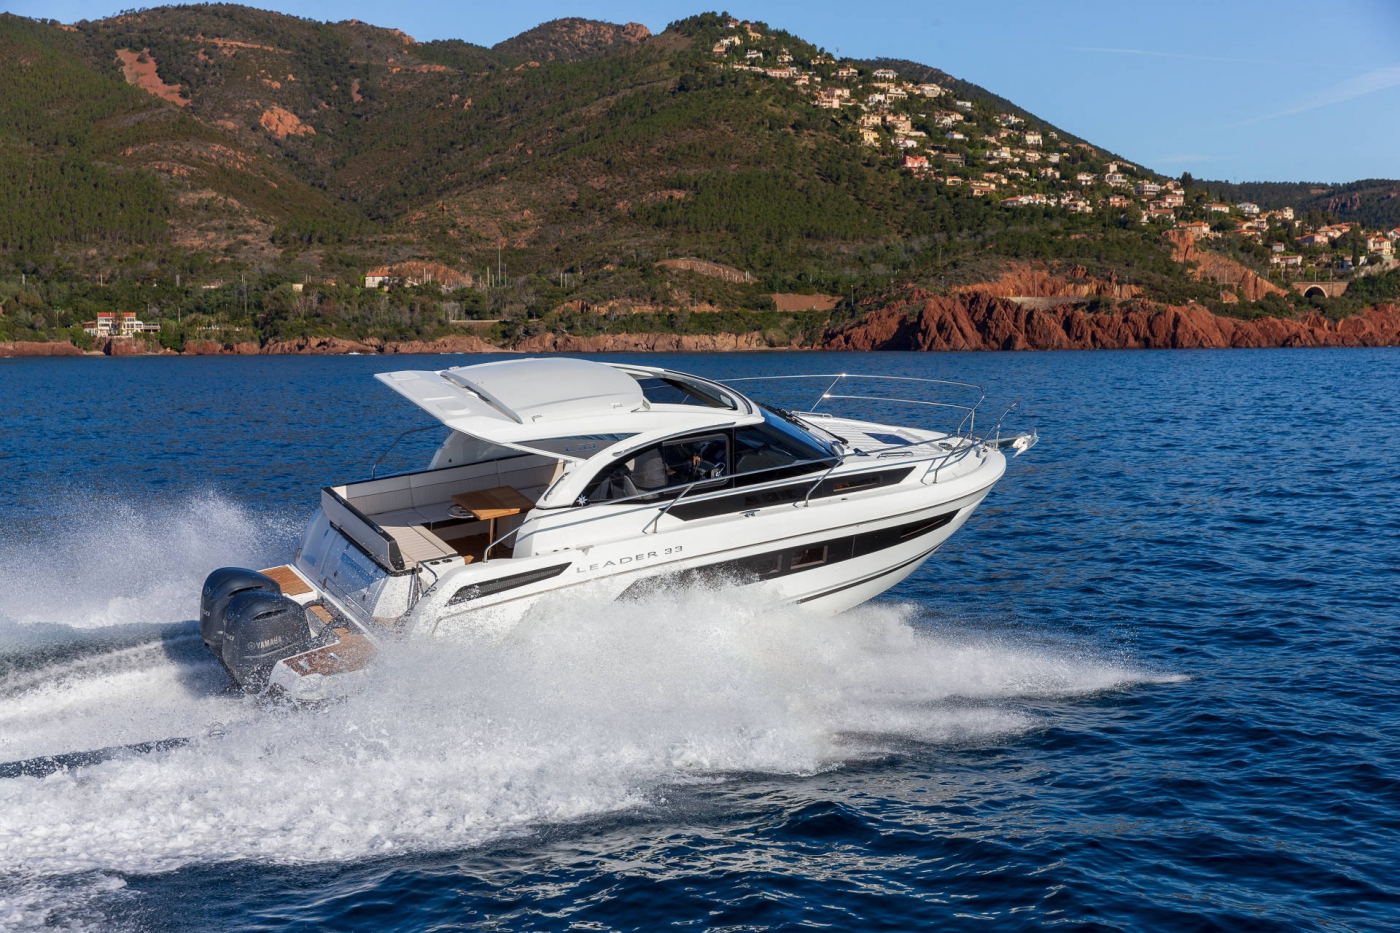 Jeanneau Leader 33 OB Outboard Motor Boats - Sea Ventures